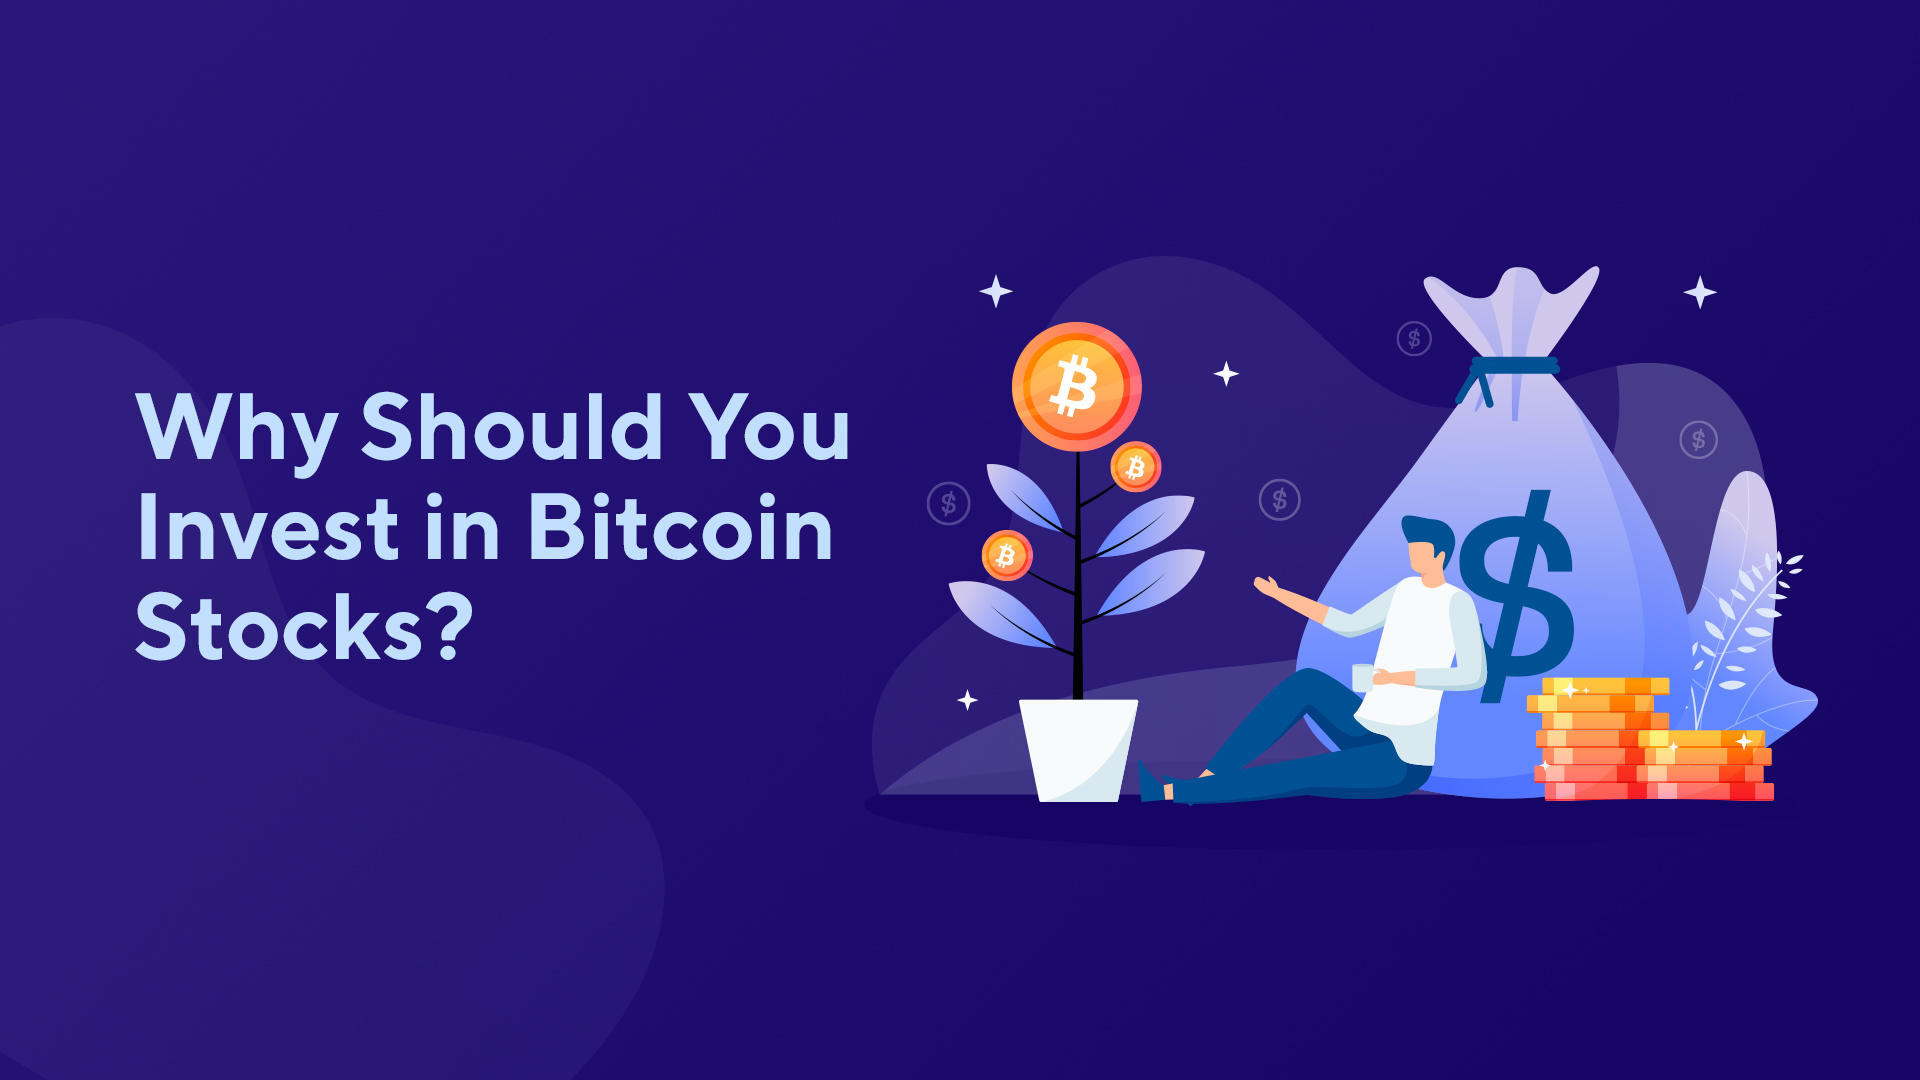 Why Should You Invest in Bitcoin Stocks?